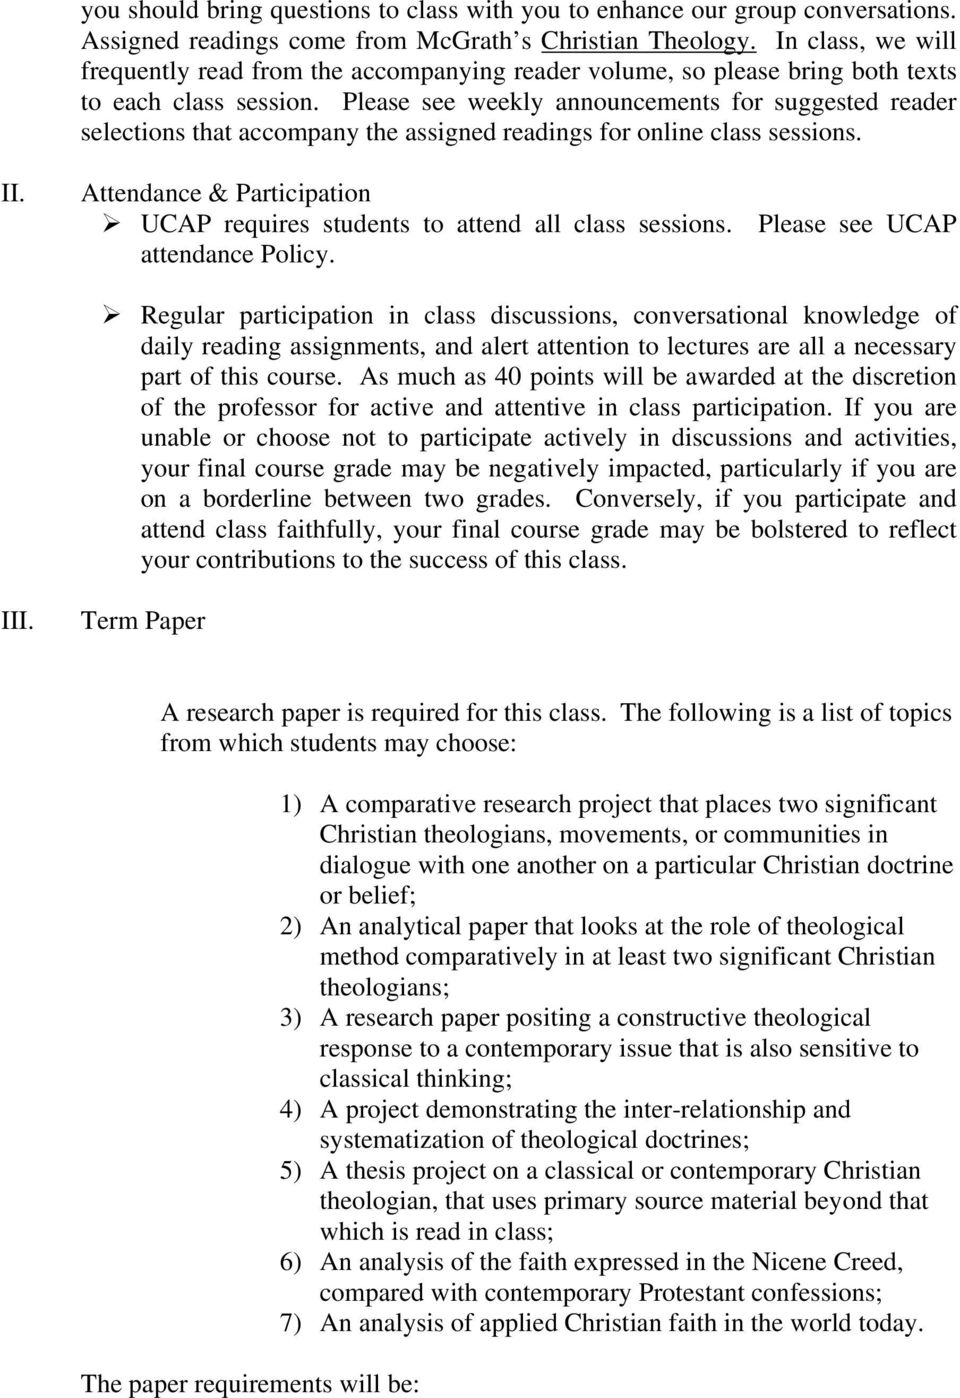 theology research paper topics